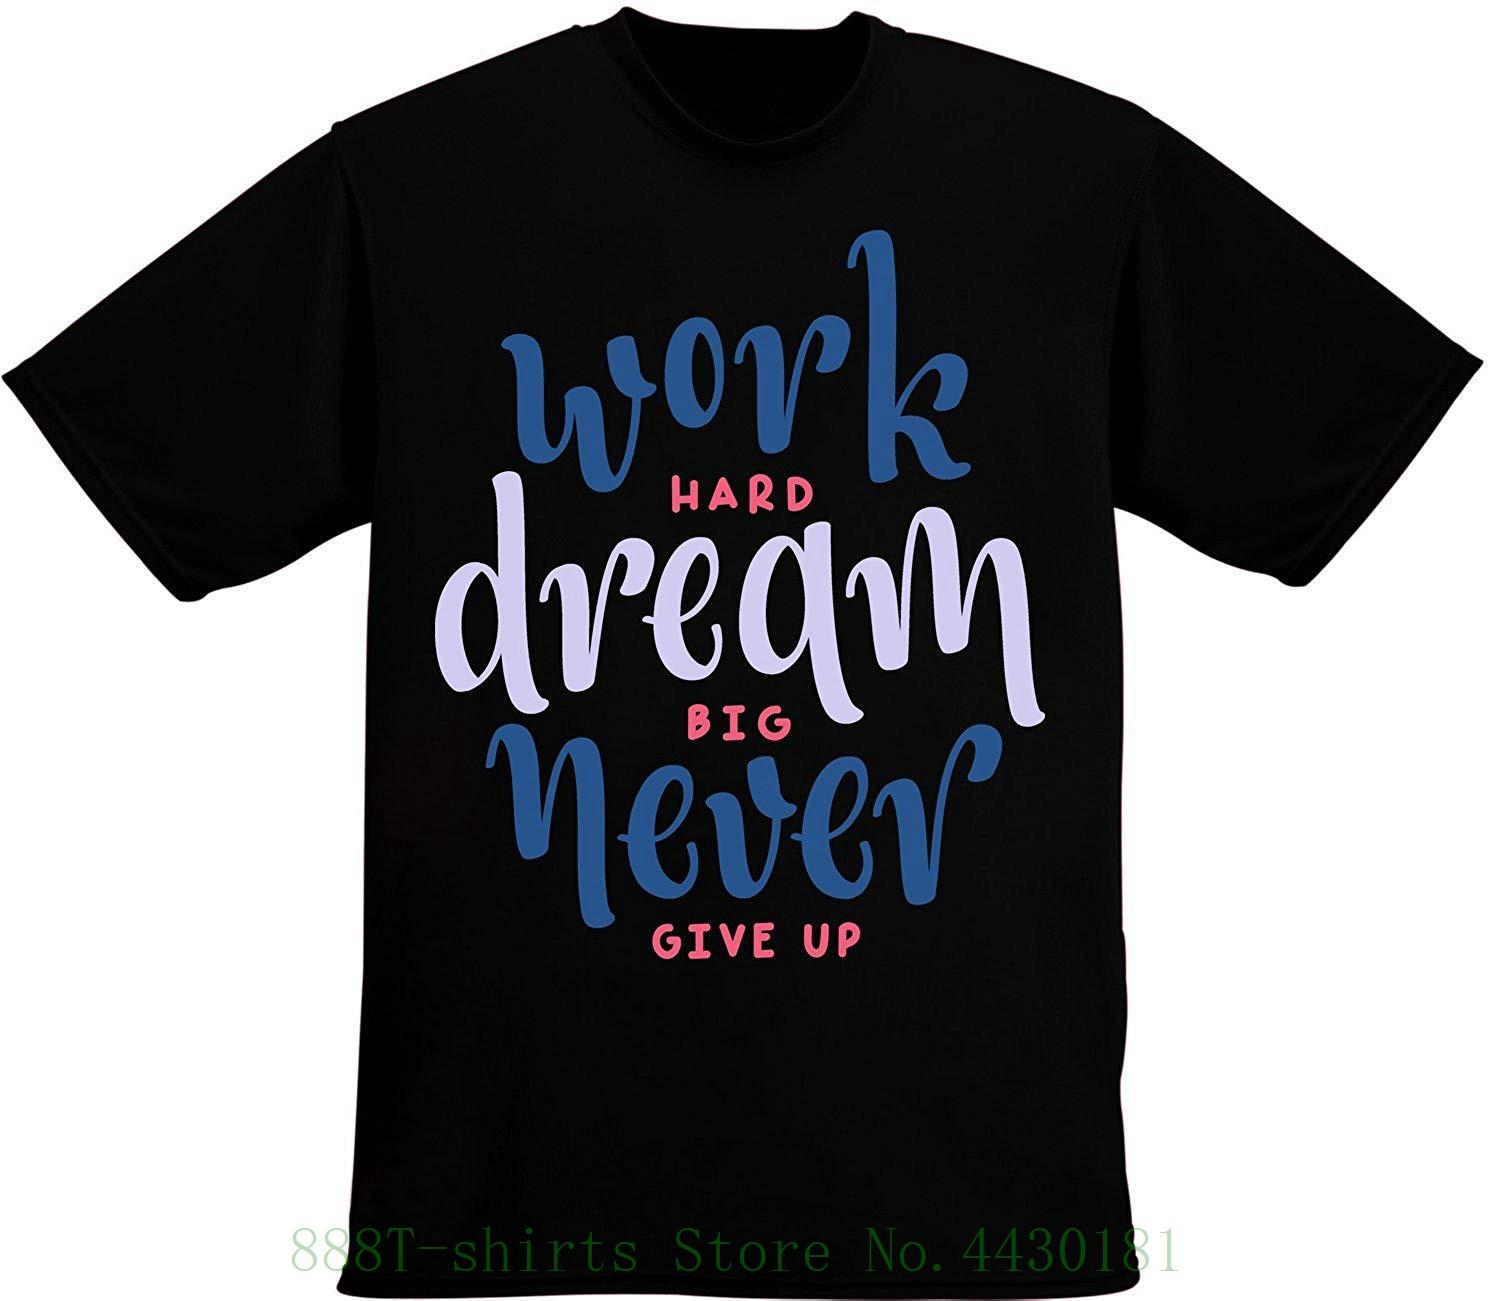 f9170300b Work Hard Dream Big Never Give Up Wise Quote Men's T Shirt Pour Hommes  Quality Print New Summer Style Cotton